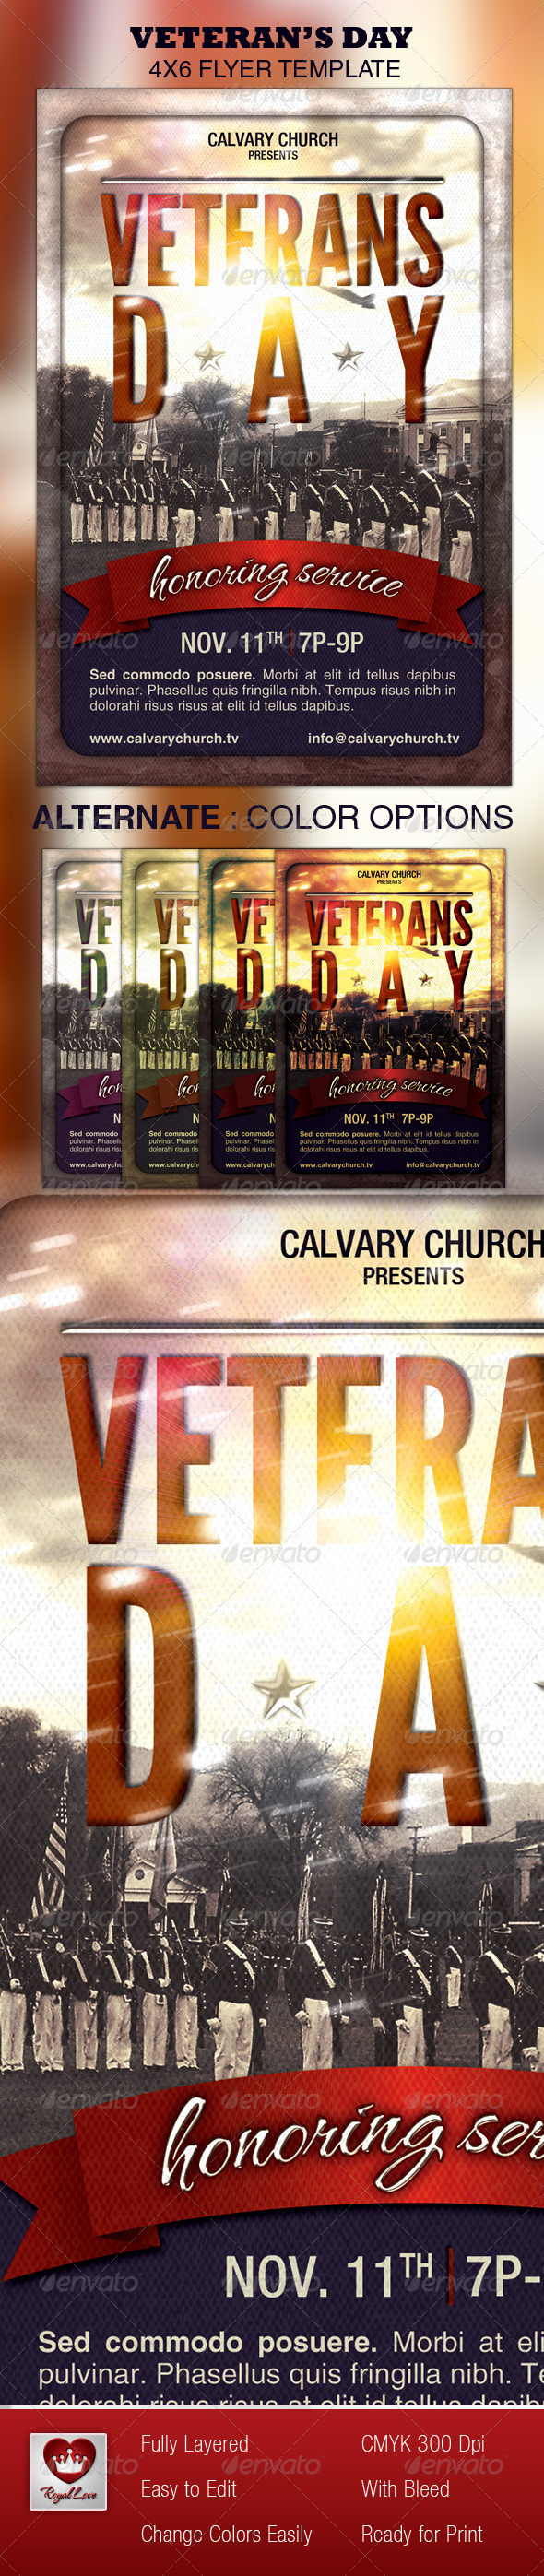 GraphicRiver Veterans Day Church Flyer 3298325